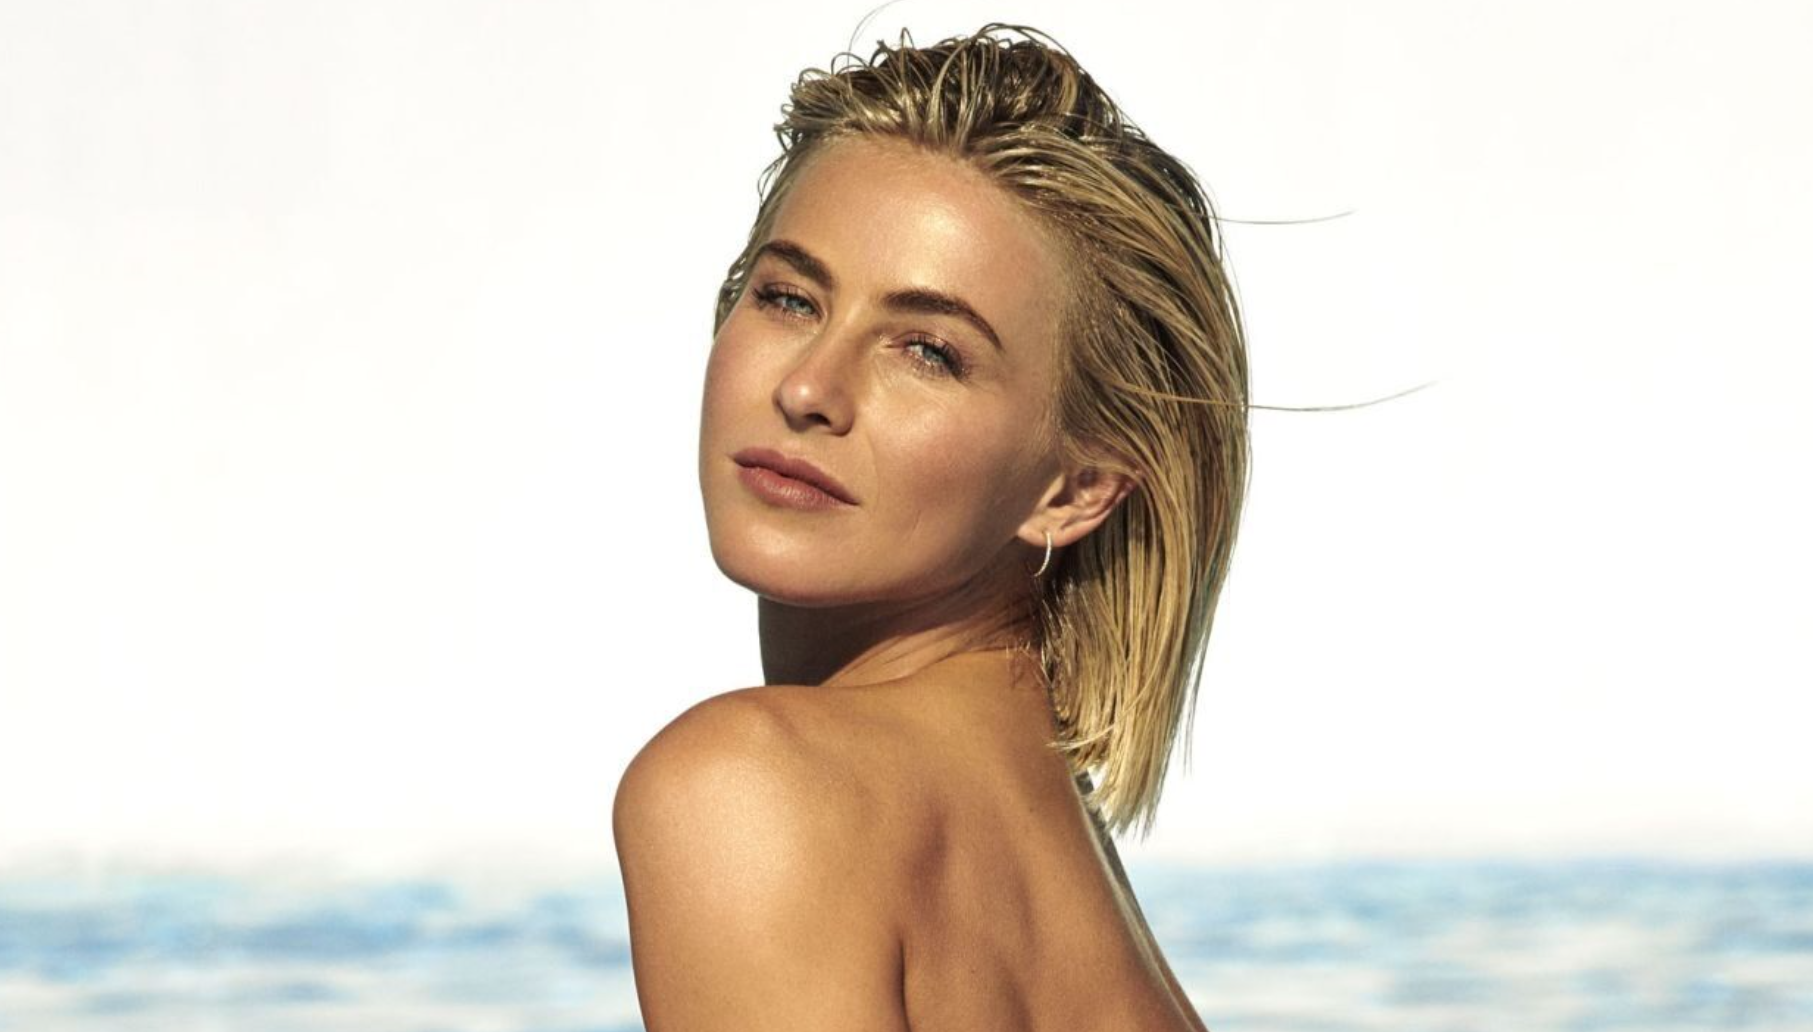 Julianne Hough Poses Nude, Reveals She's 'Not Straight,' But Told Husband Brooks Laich 'I Choose to Be With You'